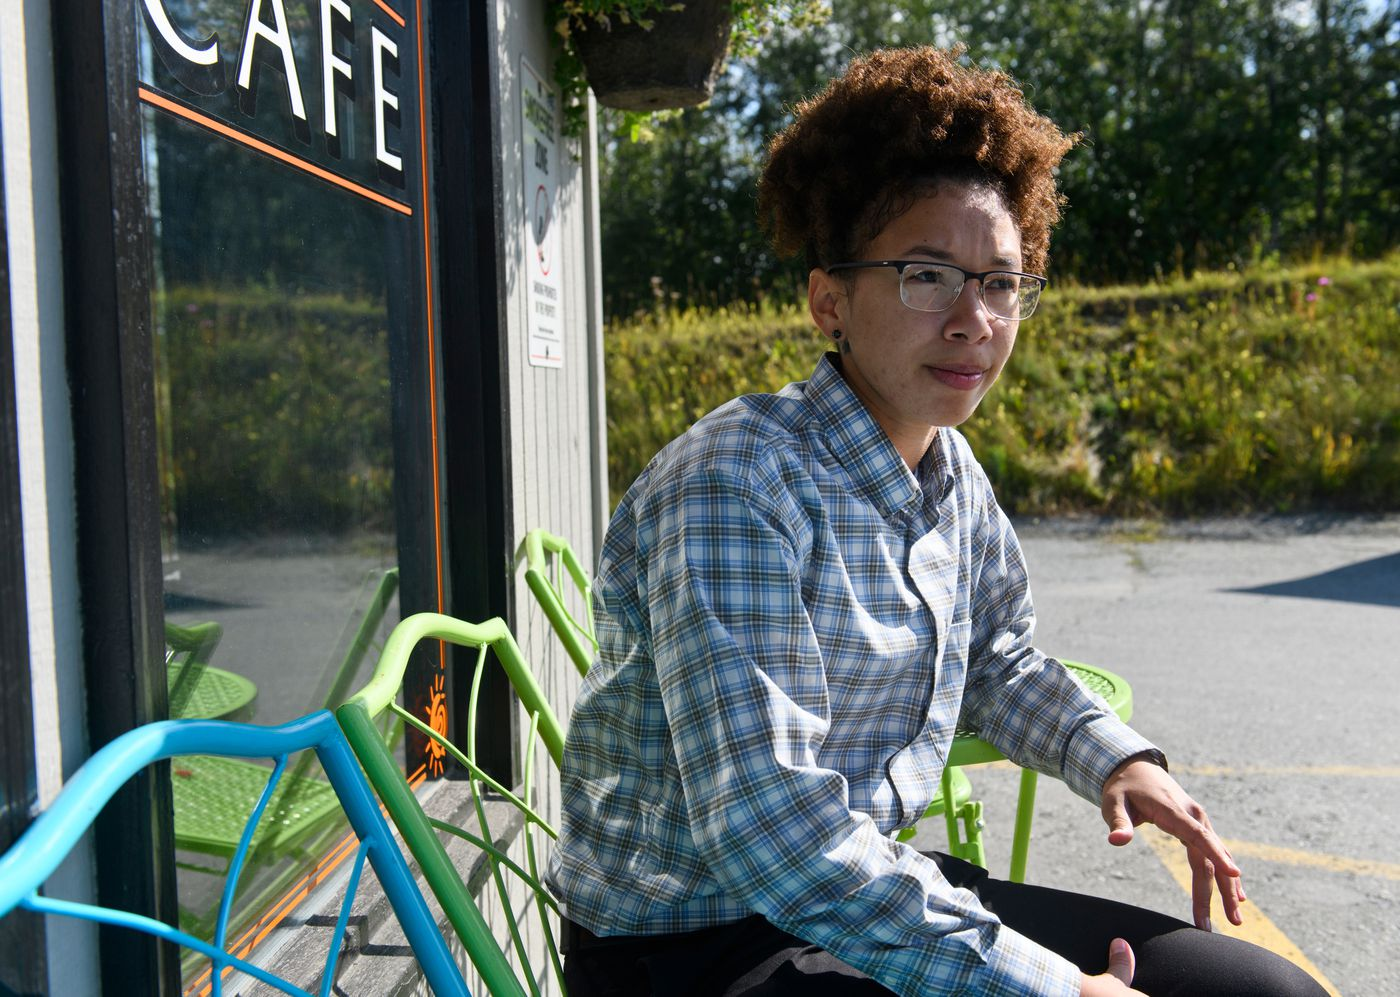 DaJonee' Hale talks about the years she spent homeless as a teen on August 13, 2020. Hale, who works as a project manager for My House Homeless Youth Center, plans to return to Germany to play professional basketball. (Marc Lester / Anchorage Daily News)